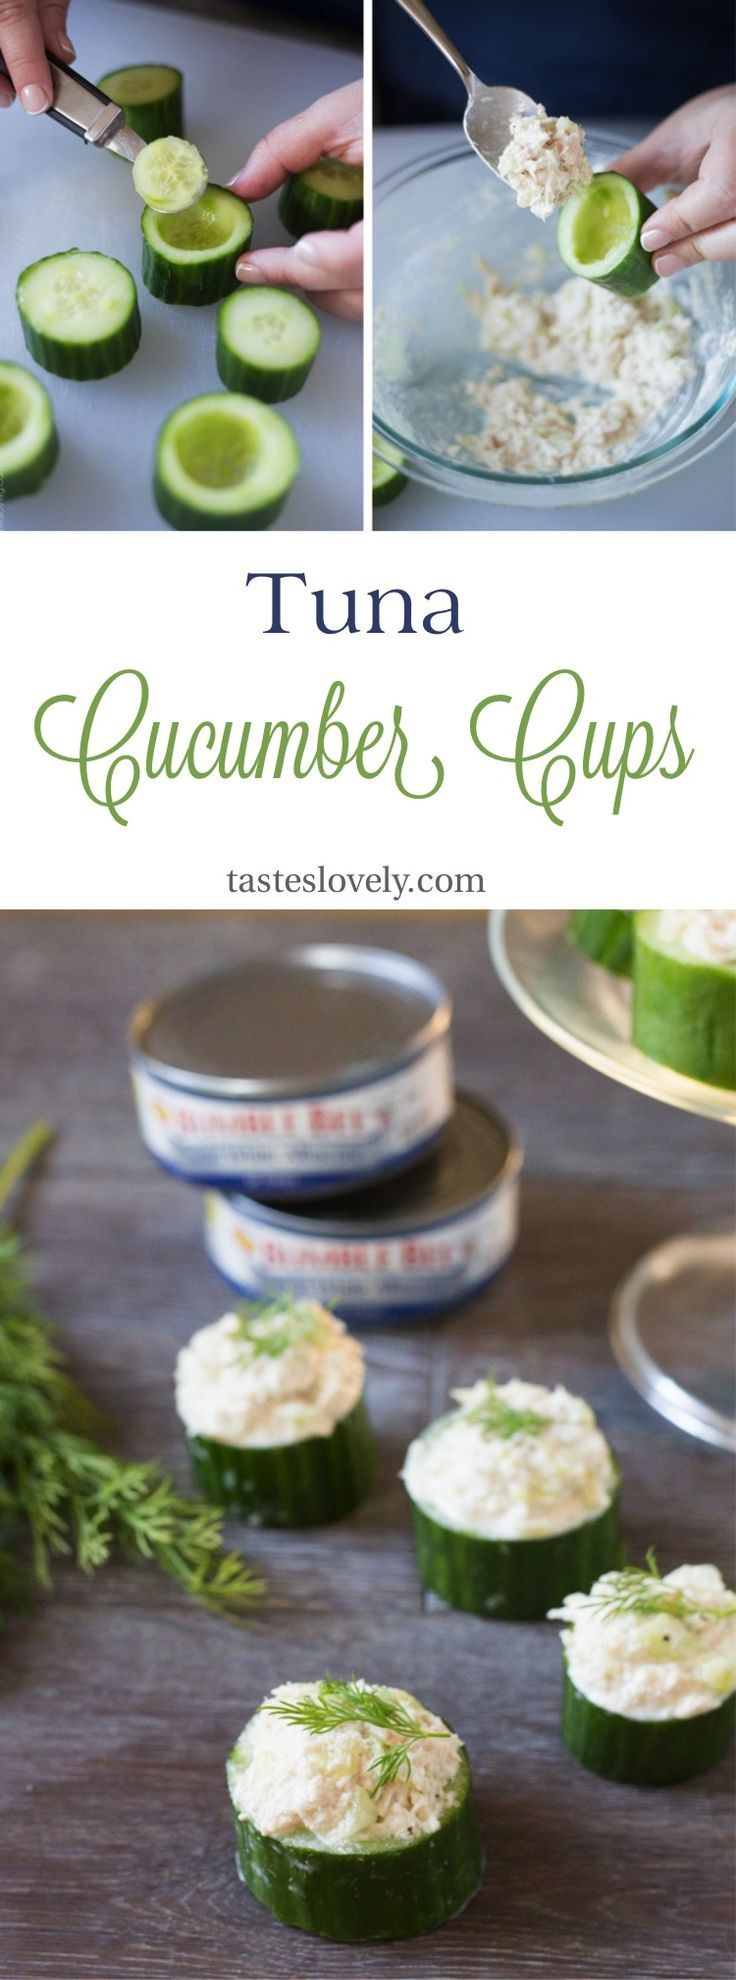 Healthy and delicious Tuna In Cucumber Cups. A cute lunch, snack or appetizer! (paleo, whole30, low carb, gluten free)